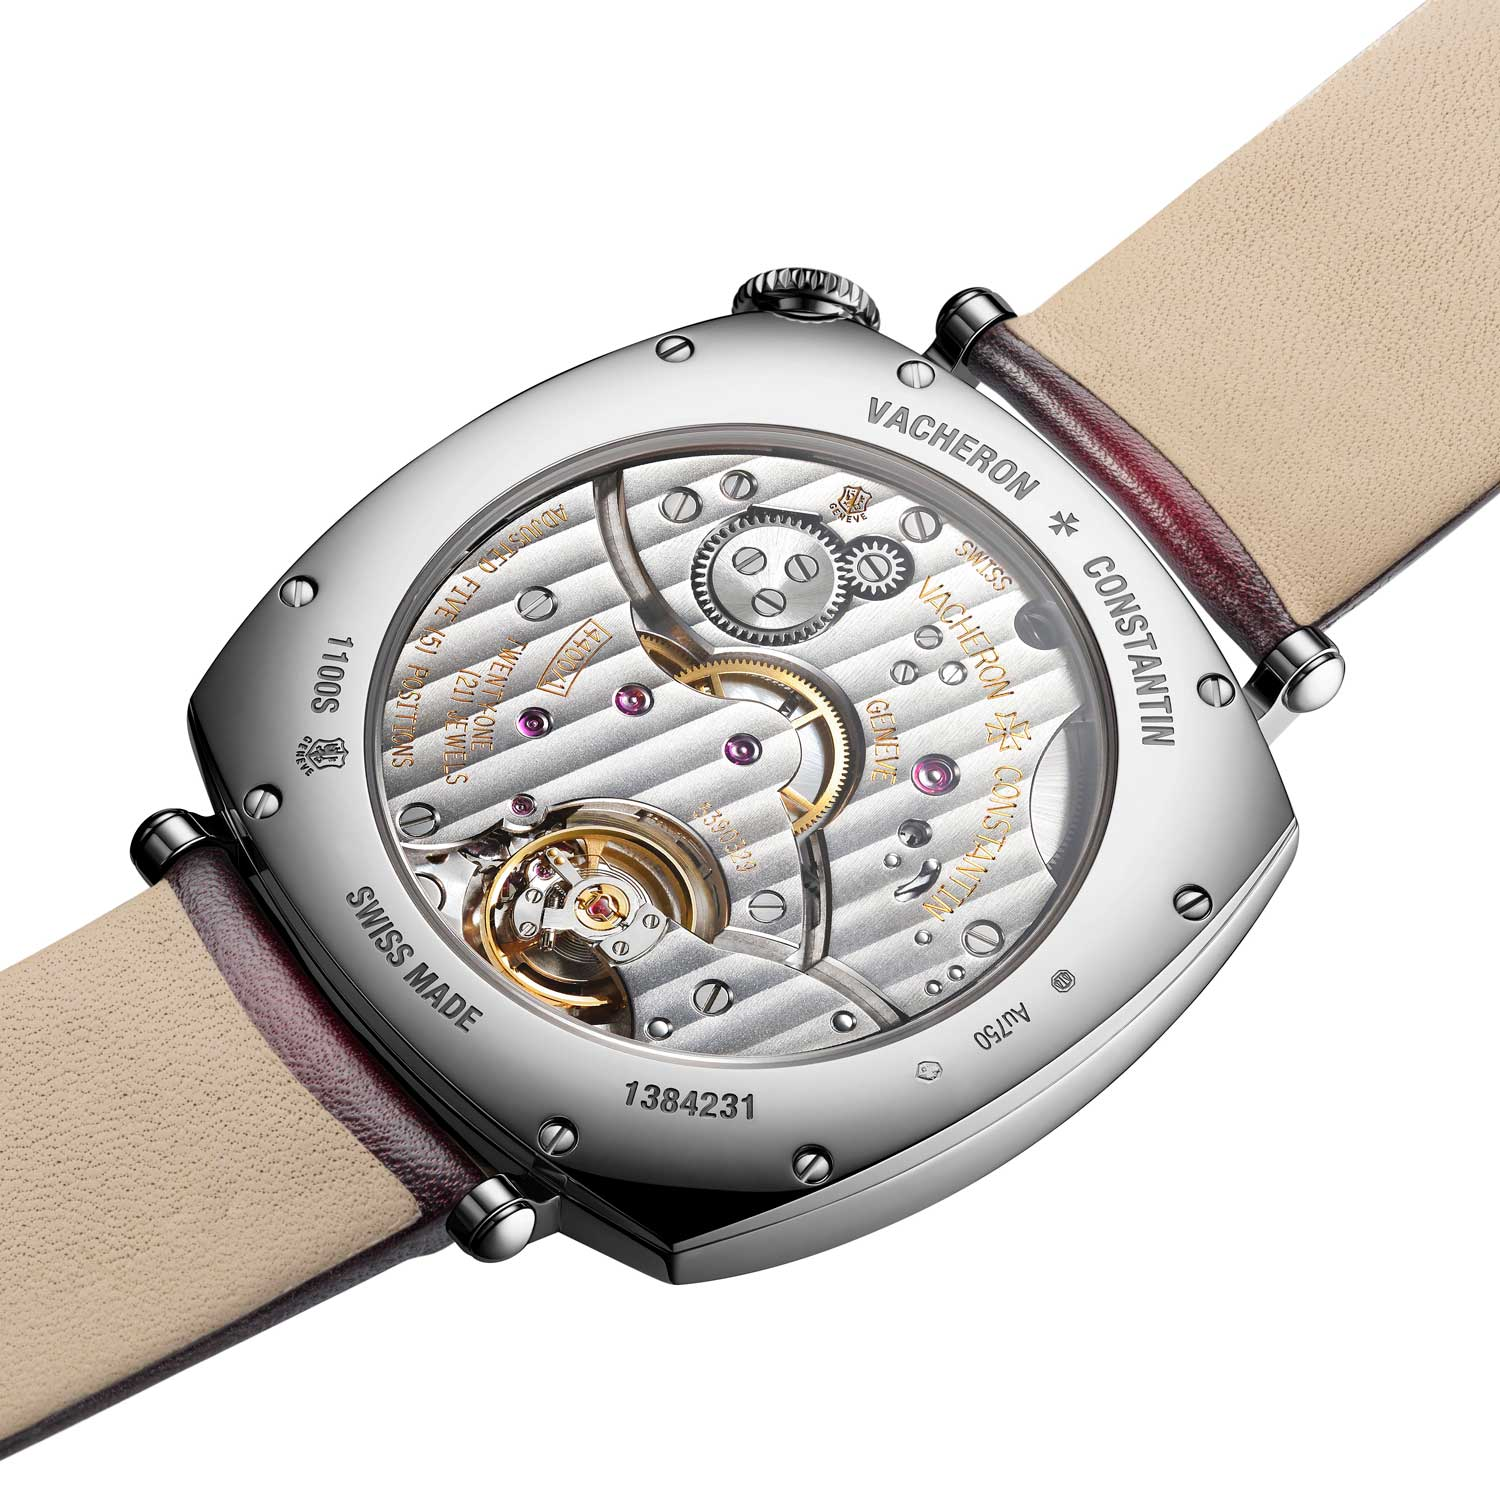 The watch is powered by caliber 4400 AS that delivers 65 hours of power reserve